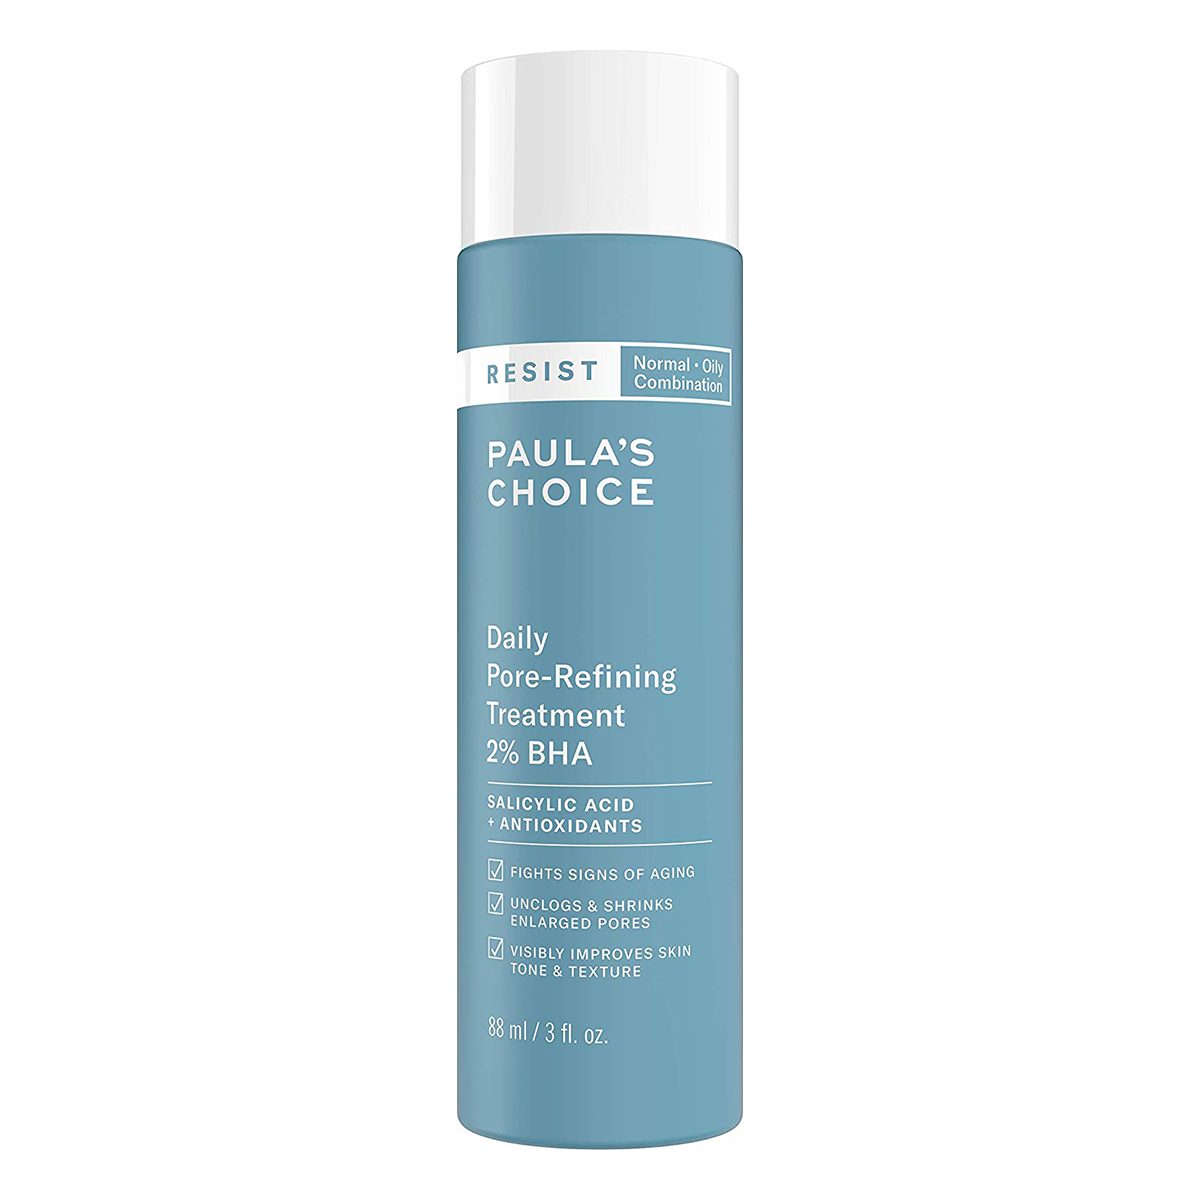 Paula's Choice RESIST Daily Pore-Refining Treatment 2% BHA with Salicylic & Hyaluronic Acid